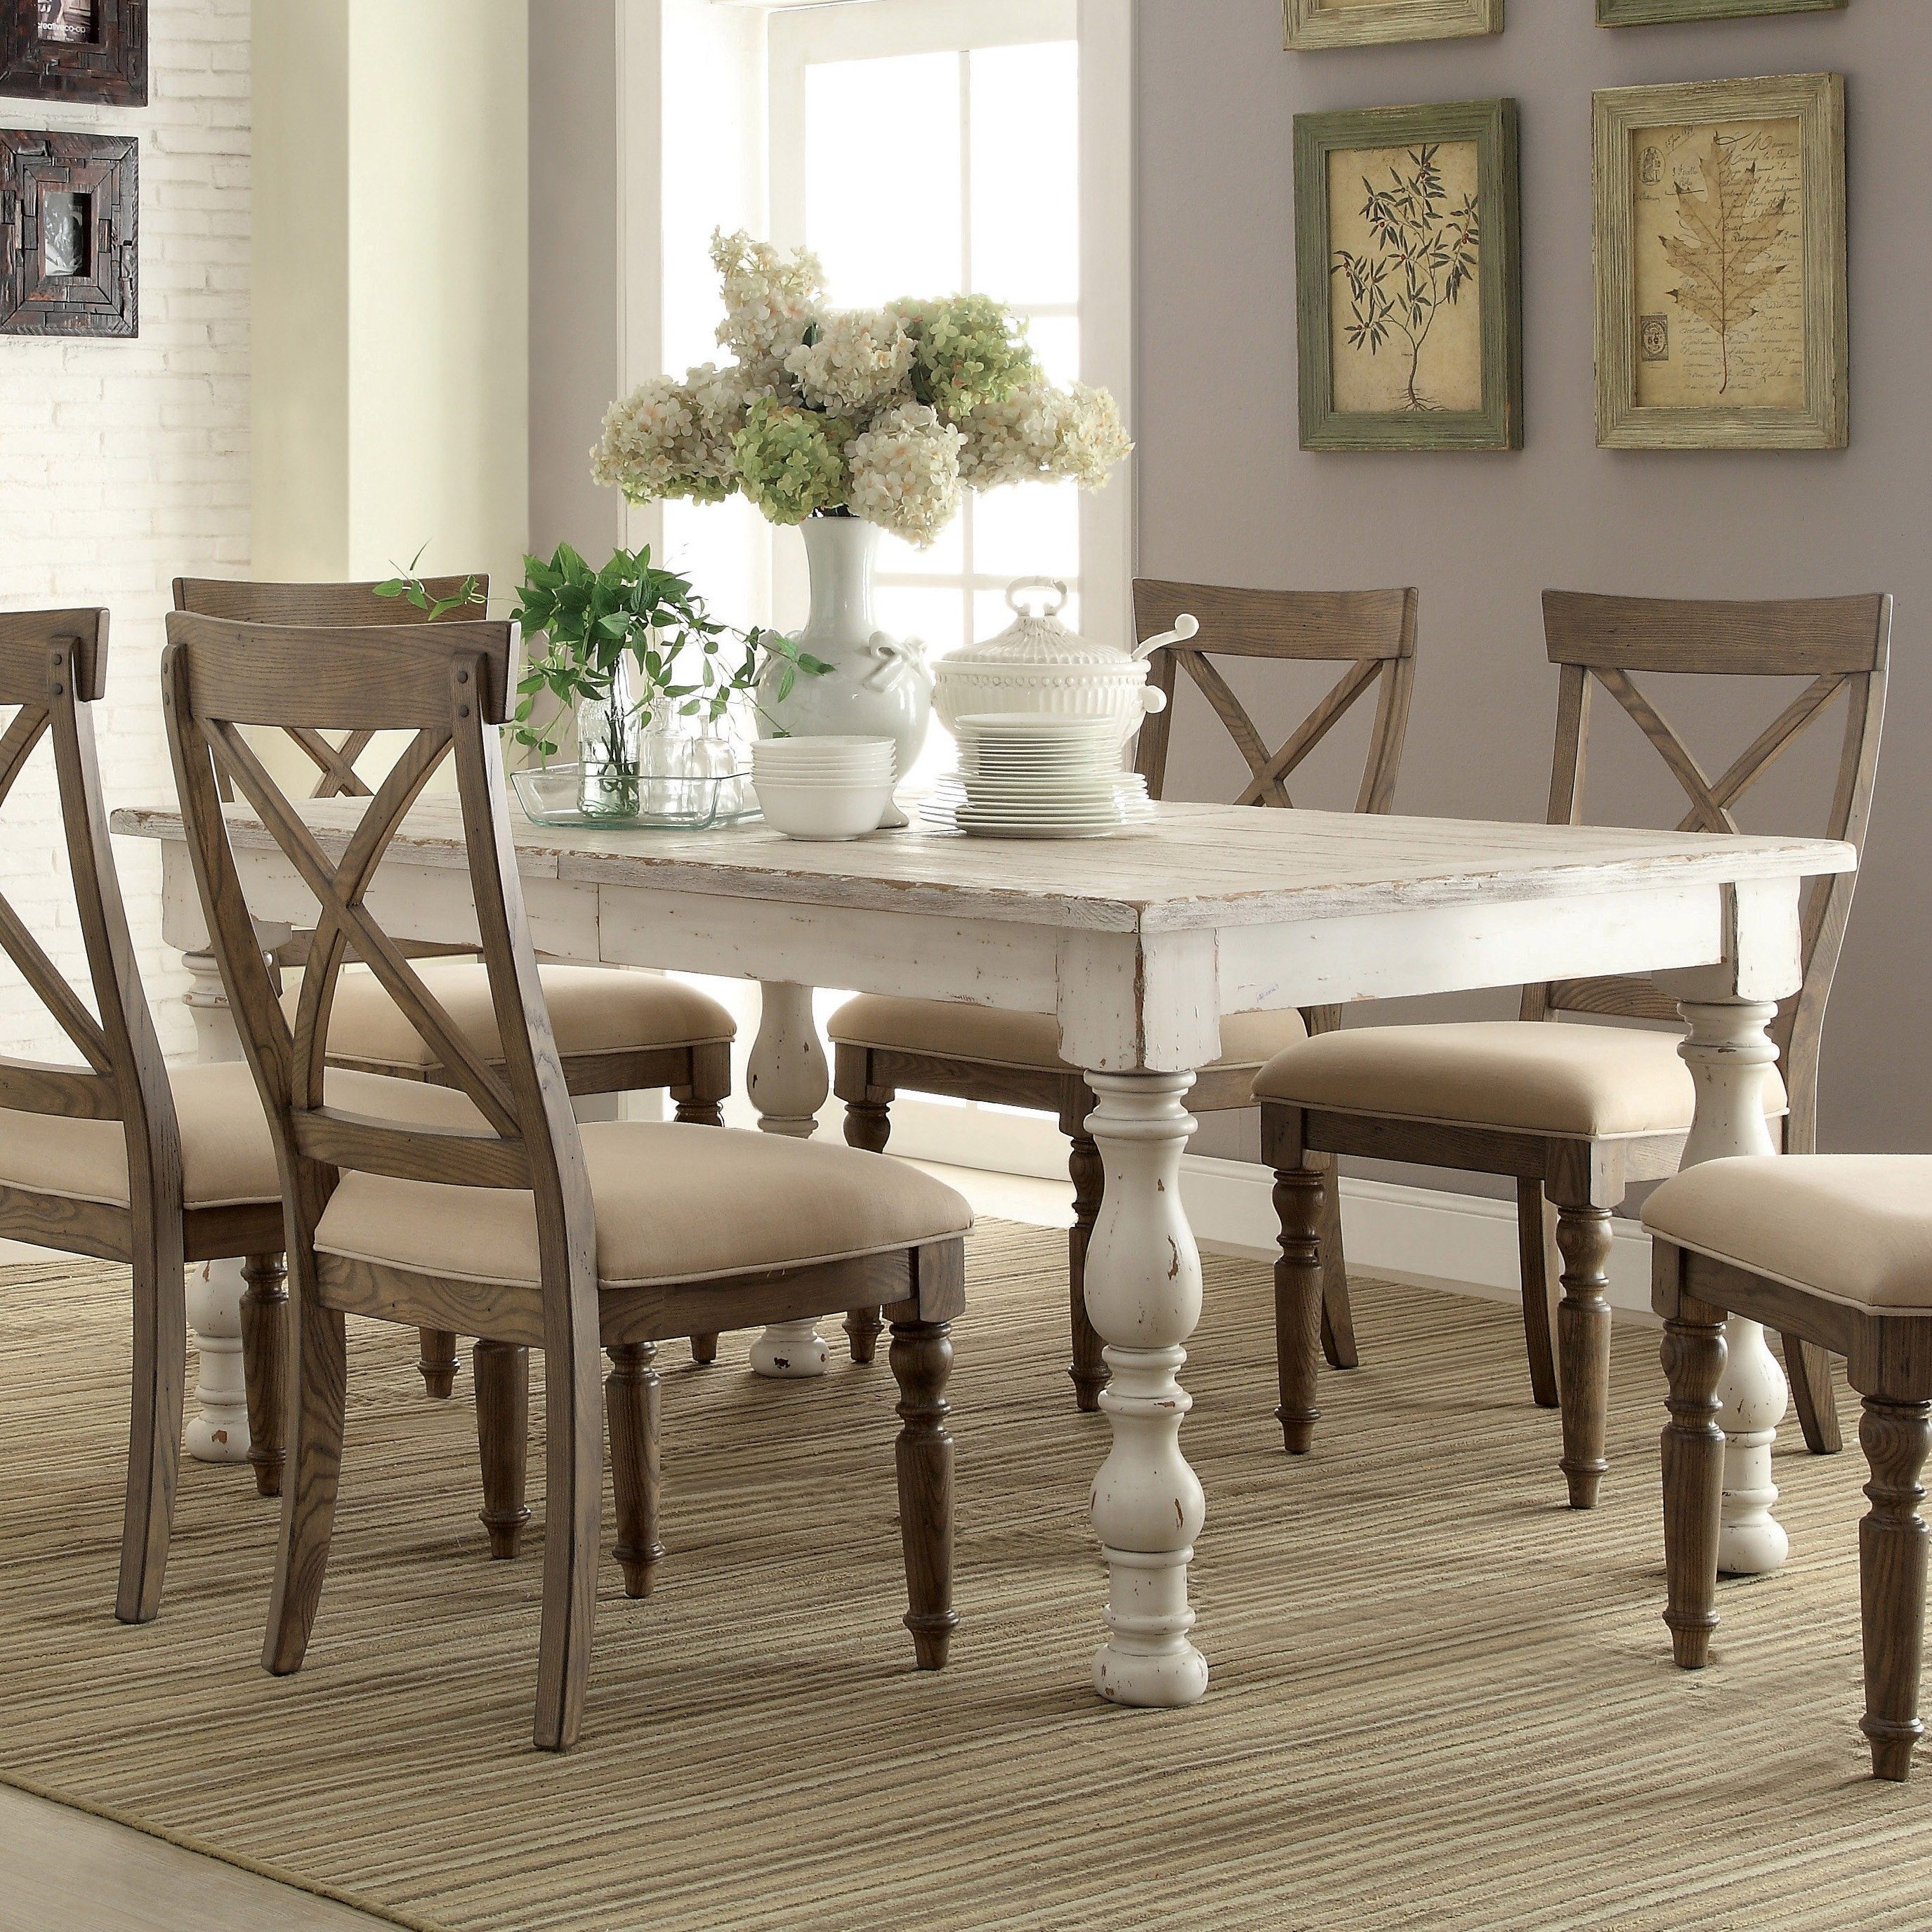 Rectangle dining table design - Aberdeen Wood Rectangular Dining Table And Chairs In Weathered Worn White By Riverside Furniture